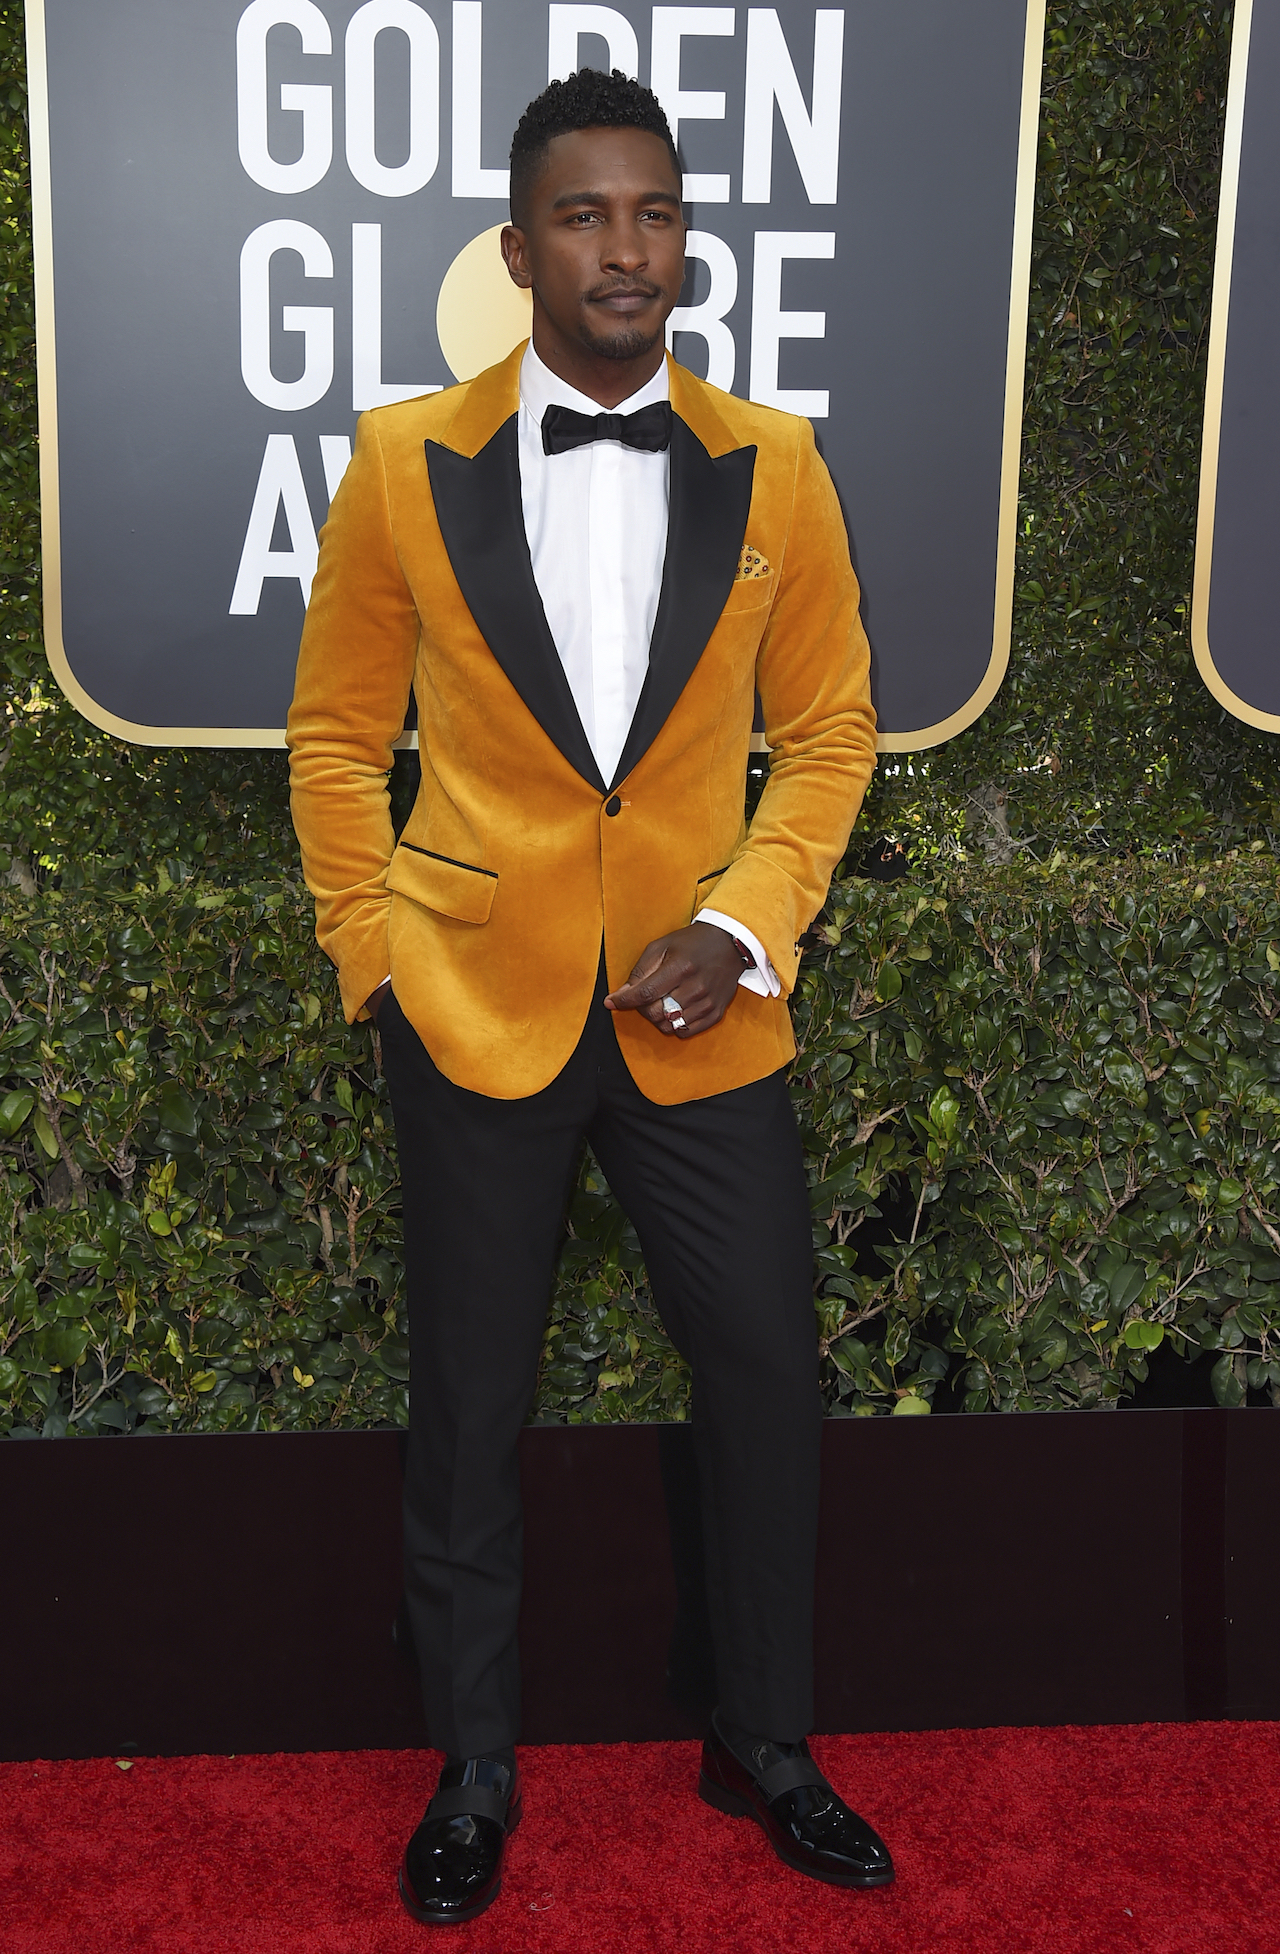 <div class='meta'><div class='origin-logo' data-origin='AP'></div><span class='caption-text' data-credit='Jordan Strauss/Invision/AP'>Scott Evans arrives at the 76th annual Golden Globe Awards at the Beverly Hilton Hotel on Sunday, Jan. 6, 2019, in Beverly Hills, Calif.</span></div>